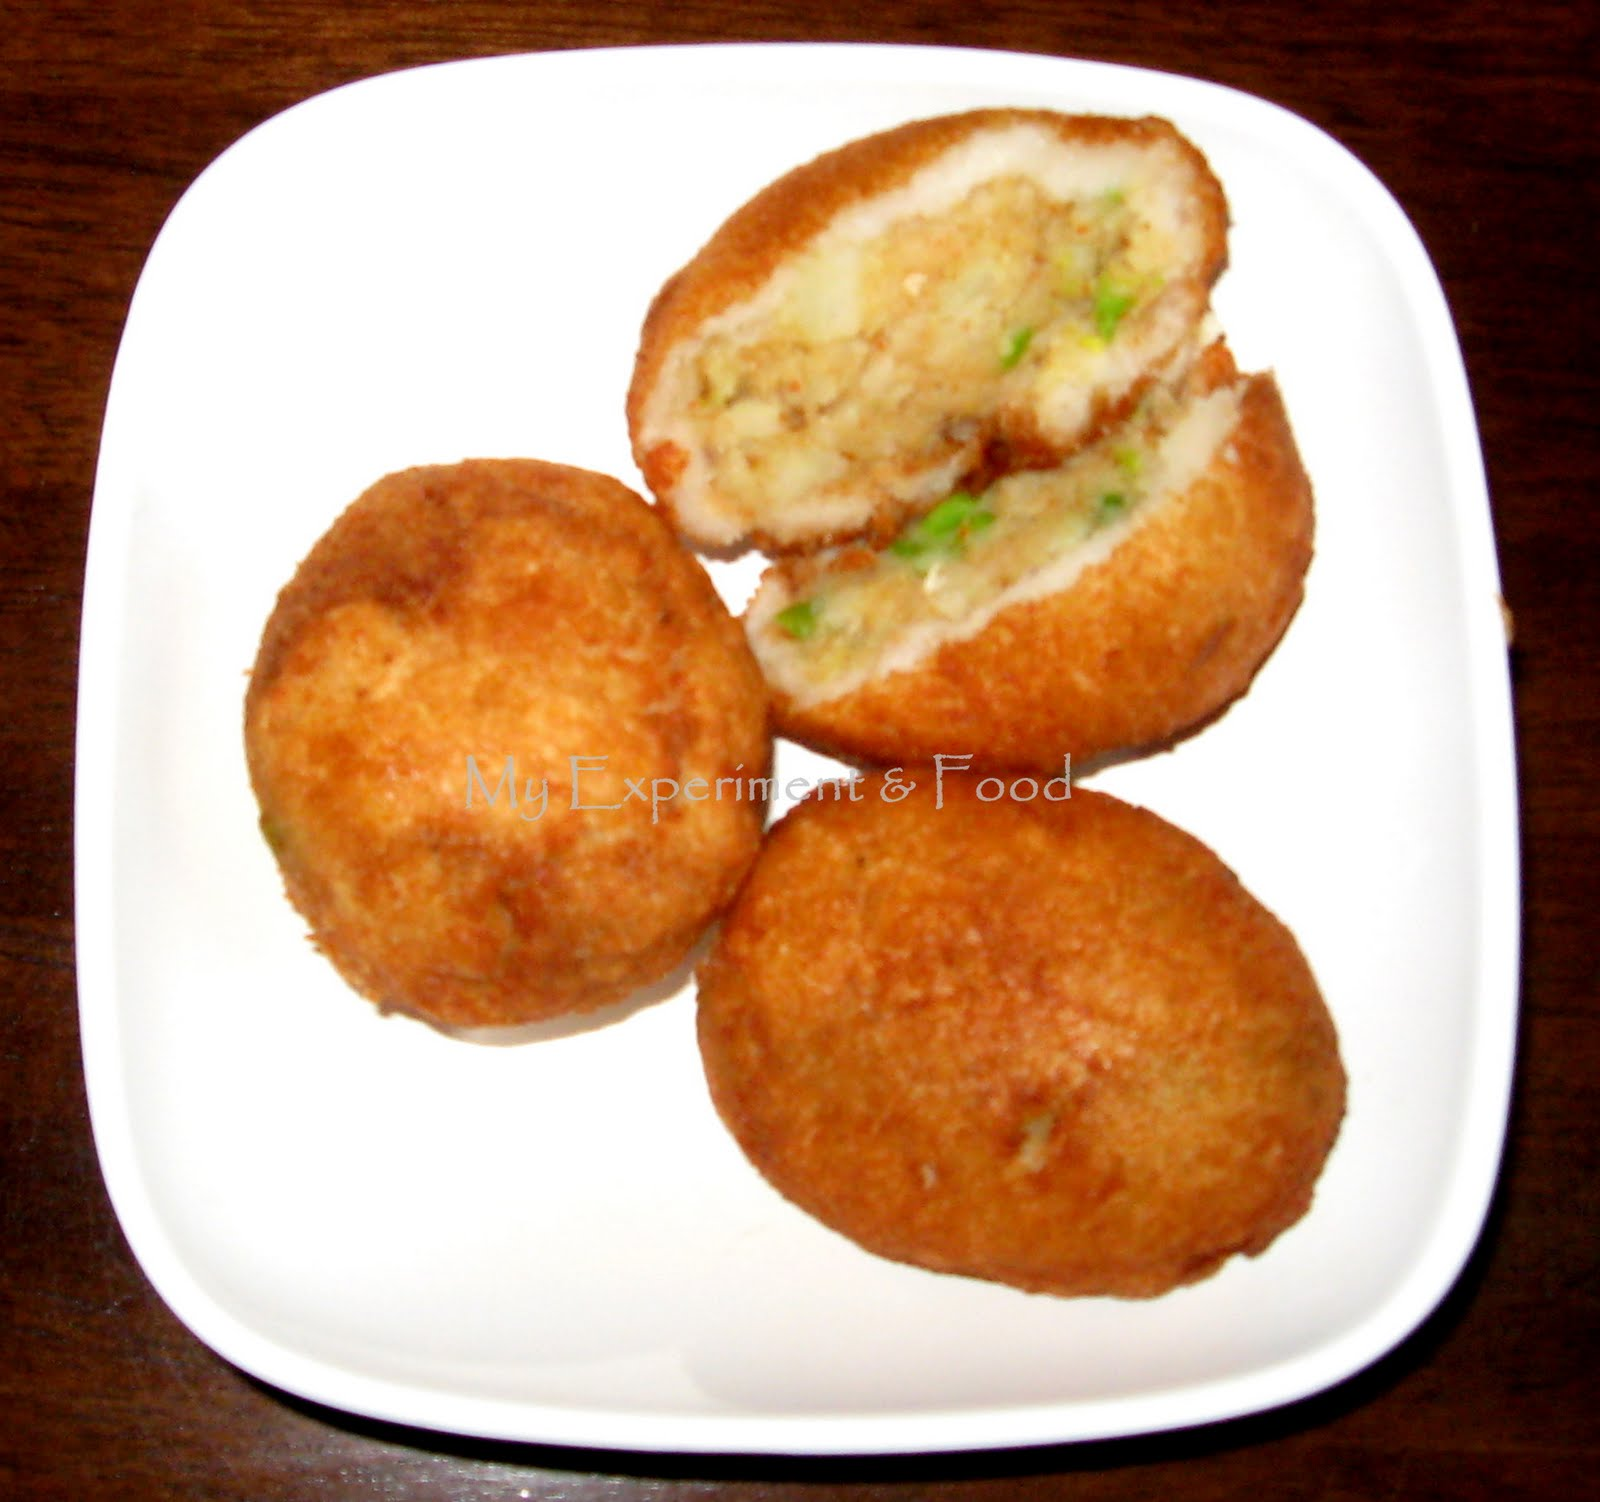 Recipes of snacks made from potatoes